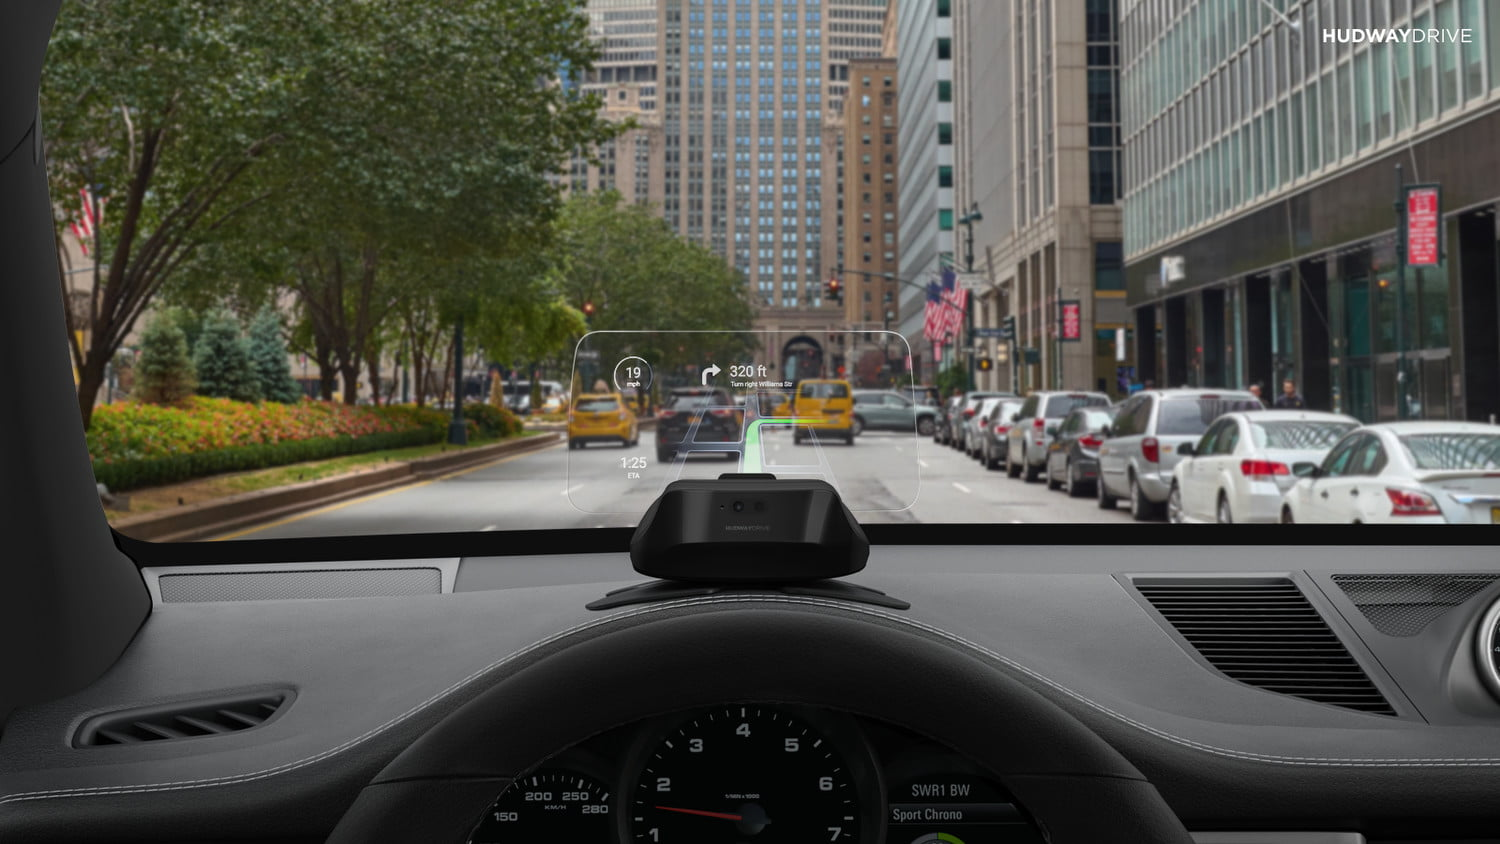 hudway drive heads up display hands on review city